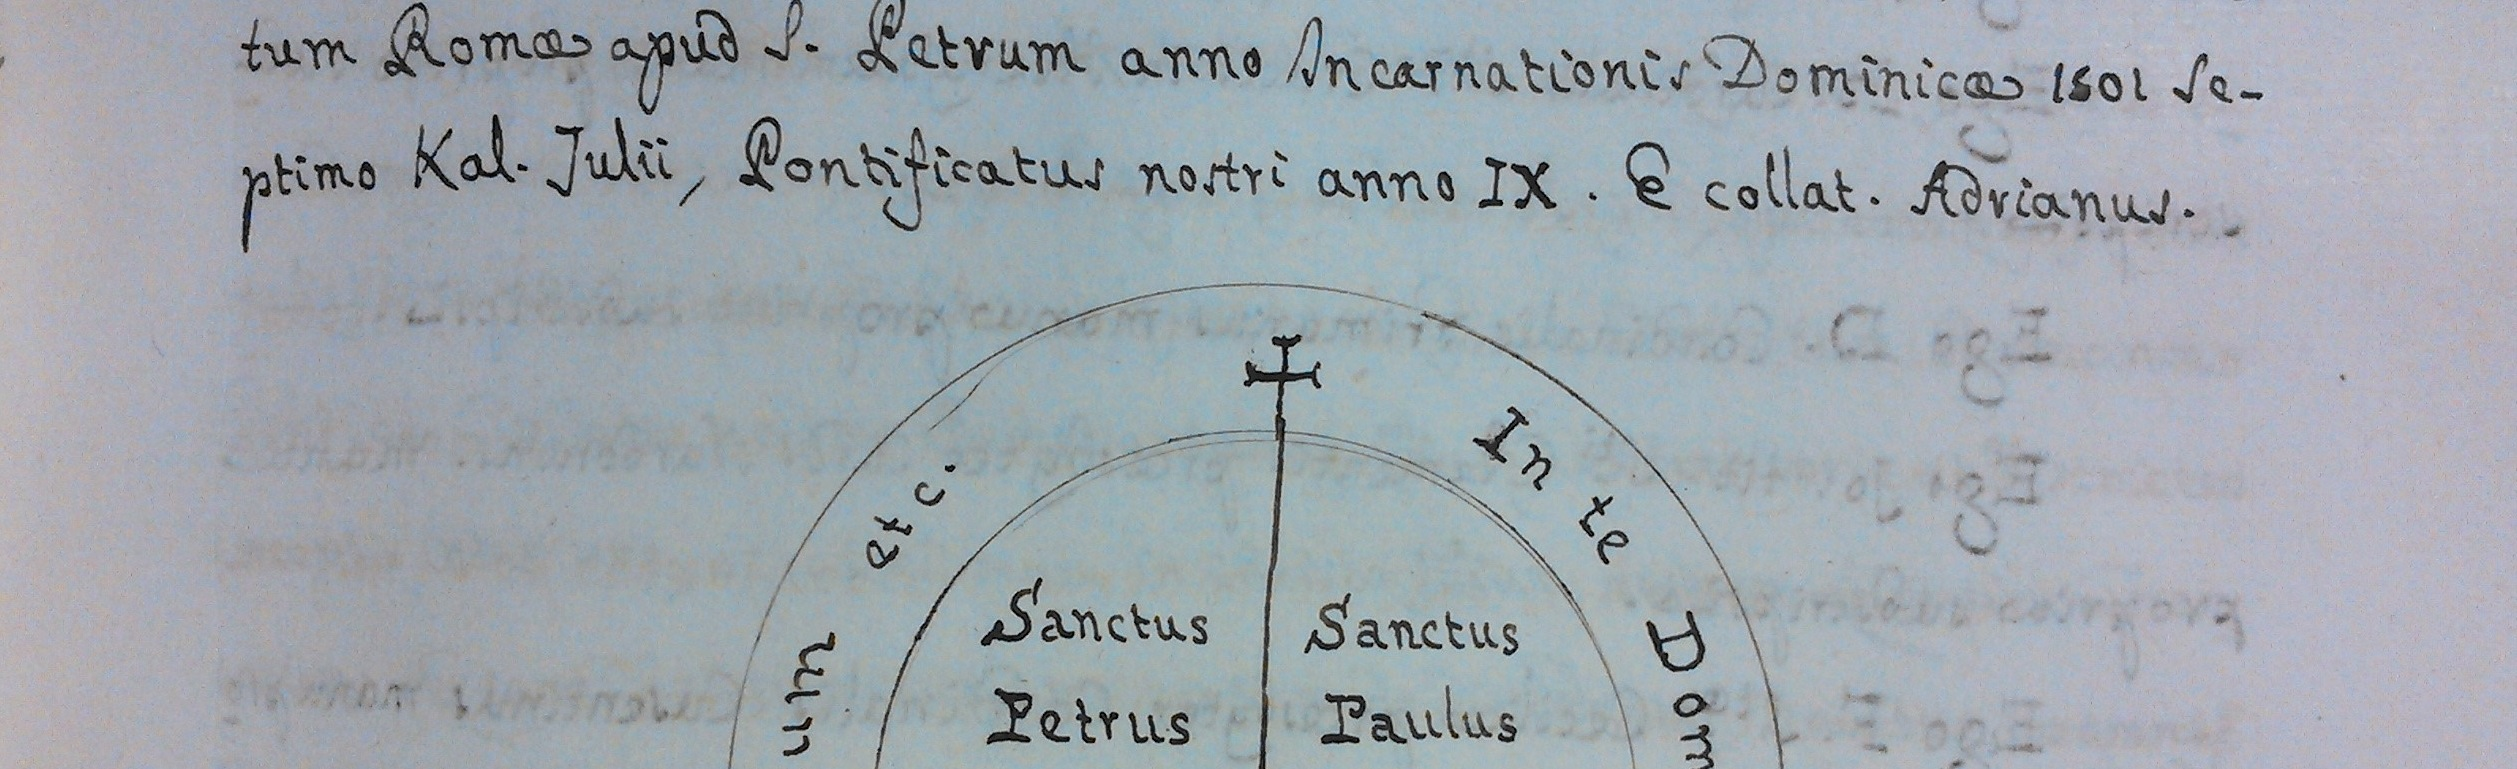 """Image of handwriting and an orb with cross and saints' names from the """"Magni archivii scriptuarum pro regali jurisdictione regni Neapolitani"""", a general history of the Spanish administration of the Kingdom of Naples undertaken for Philip IV of Spain. From the Chioccarelli Collection."""